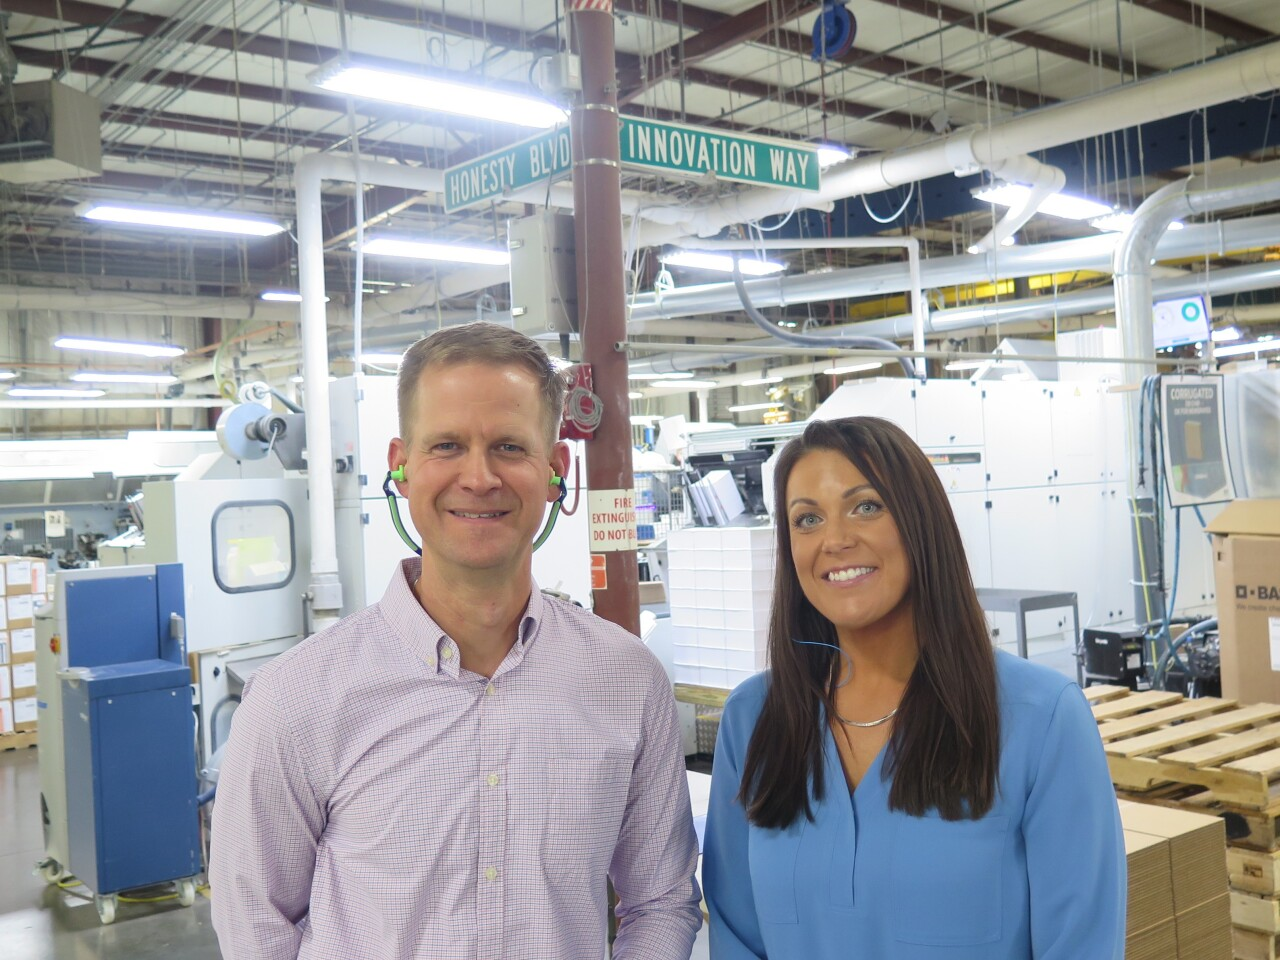 """Marcus Sheanshang, left, and Amanda Hall pose for a photo in JBM Packaging's manufacturing facility. They're standing below street signs that say """"Innovation Way"""" and """"Honesty Blvd."""""""